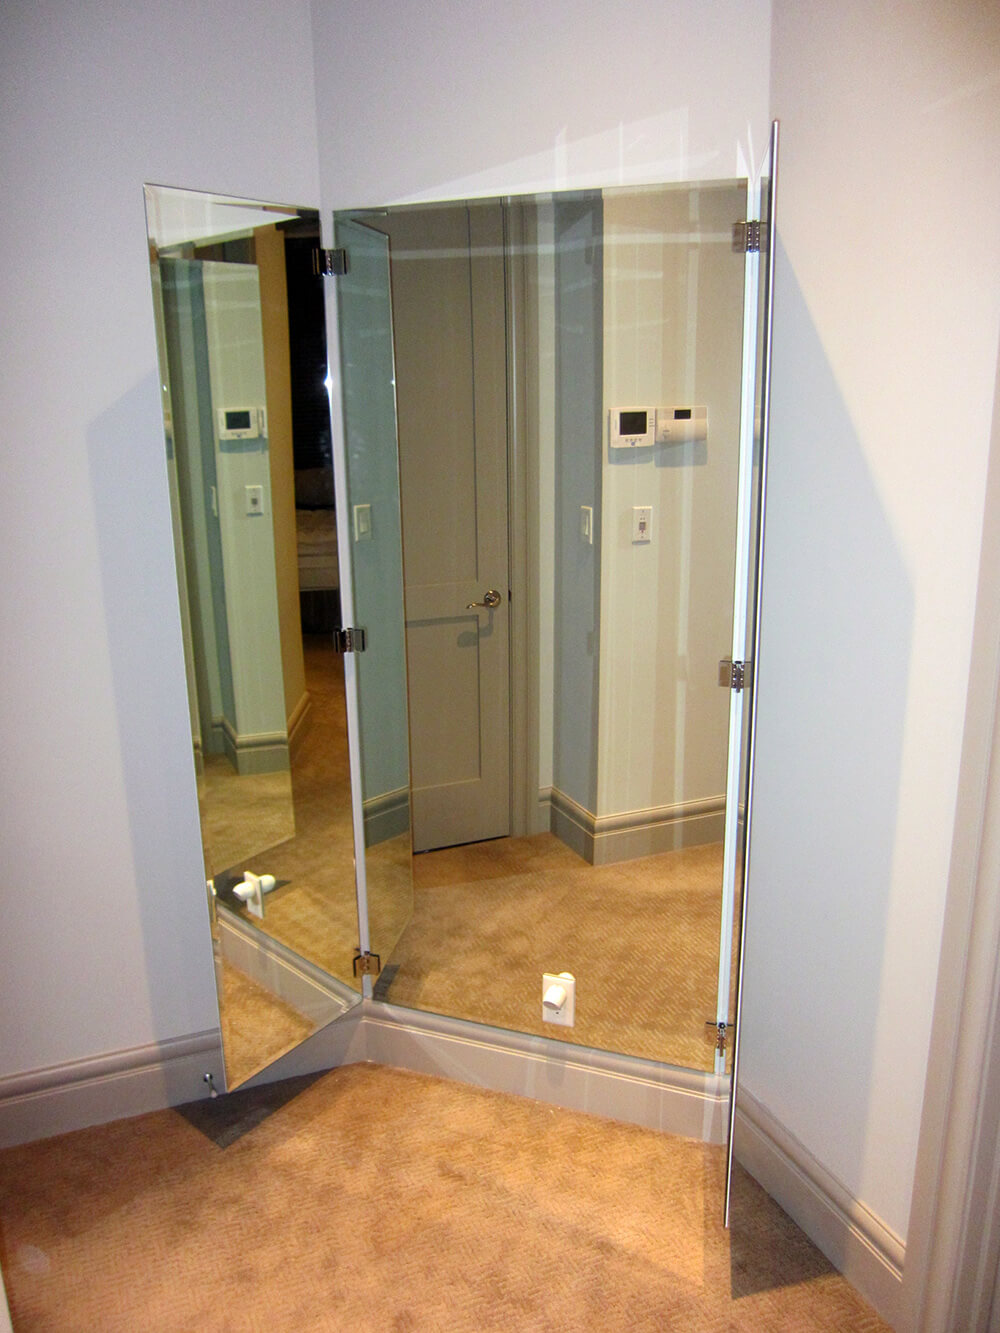 mirrors house of mirrors glass calgary mirrors. Black Bedroom Furniture Sets. Home Design Ideas